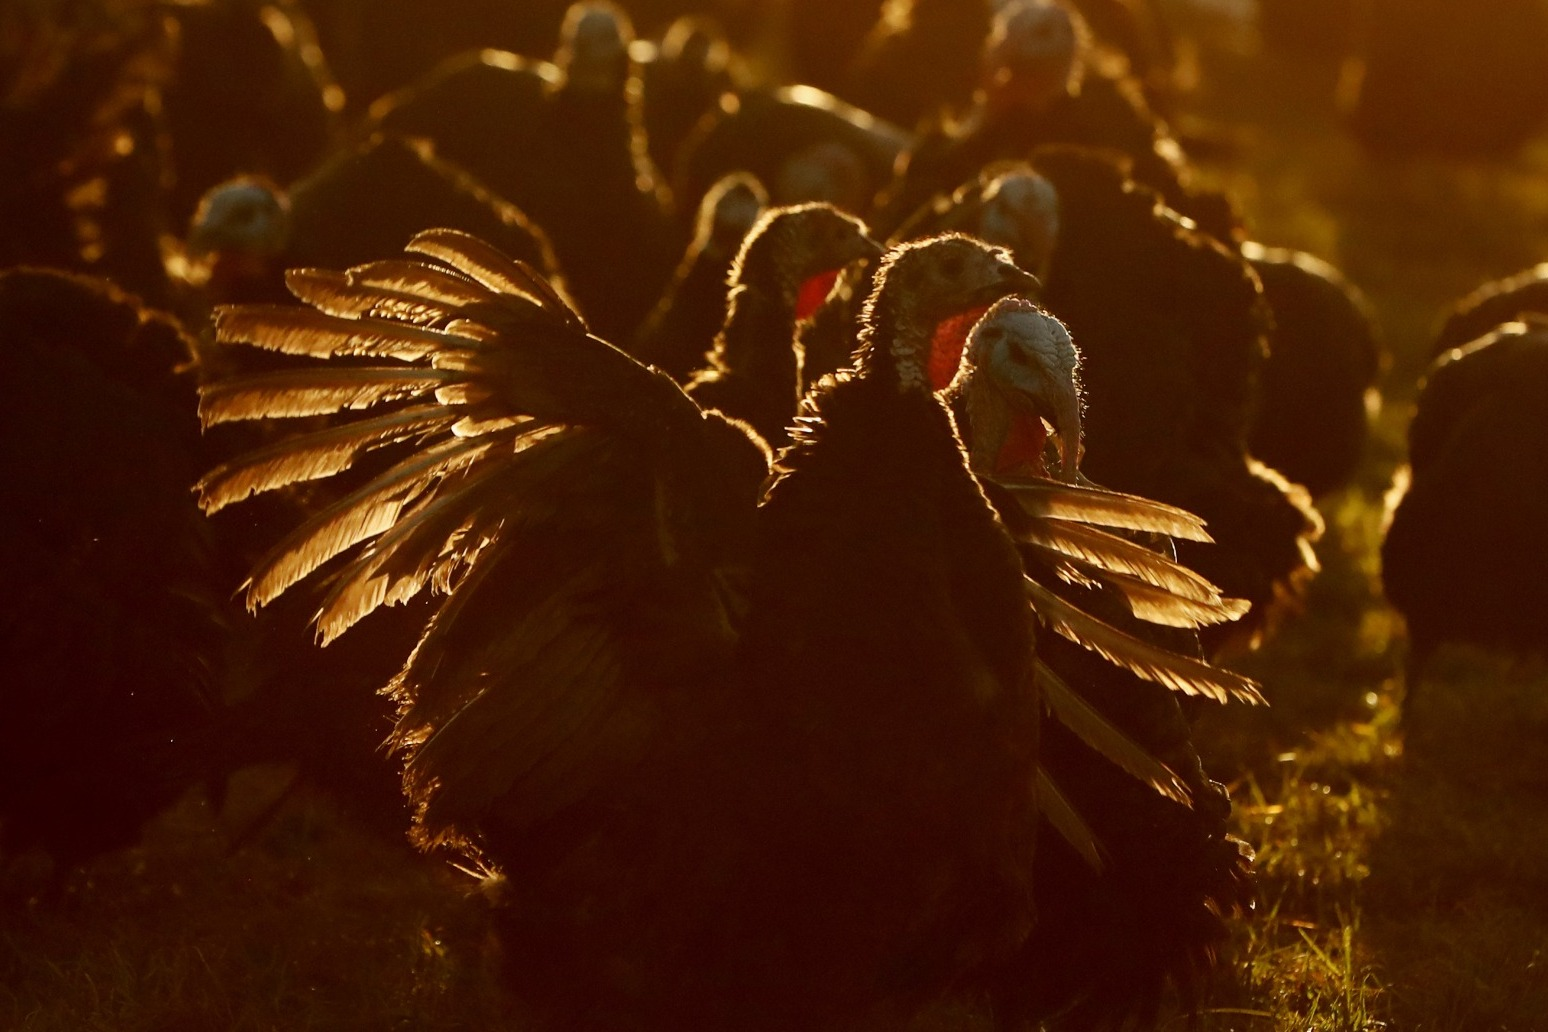 Thousands of turkeys culled after bird flu outbreak at Yorkshire farm